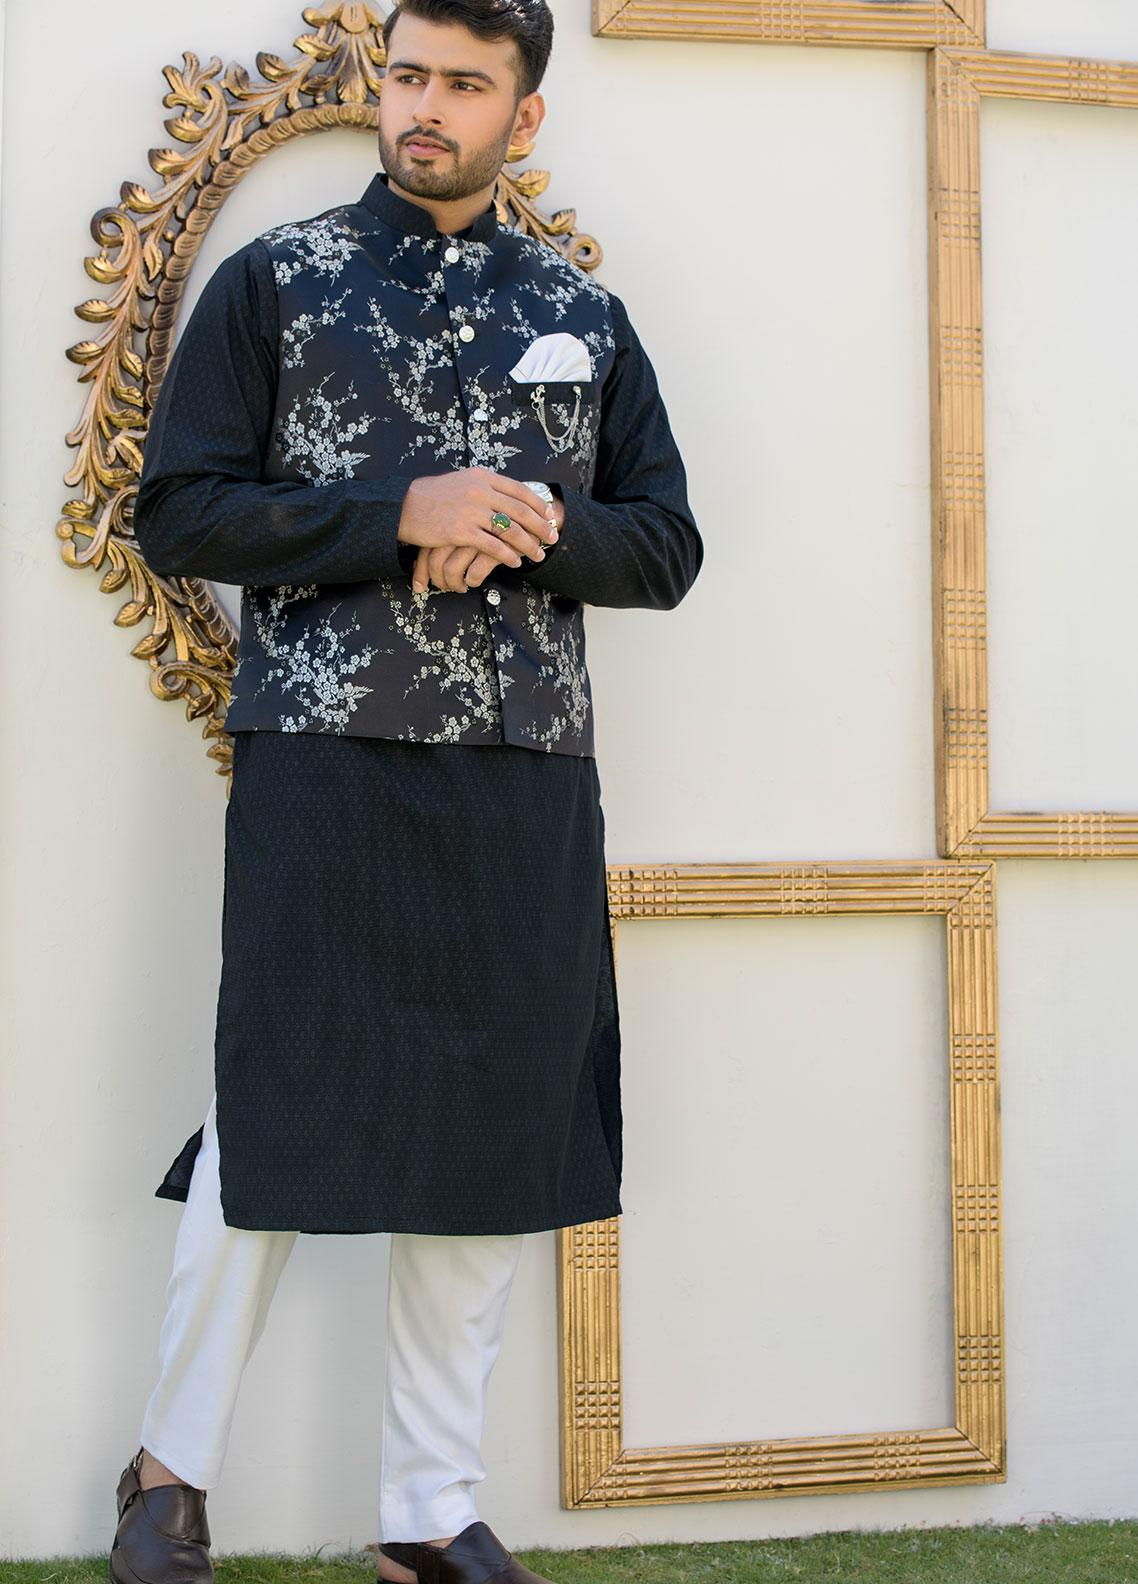 Chic Ophicial Cotton Formal Kurta Pajama with Waistcoat for Men - CH01 Silver Linnings